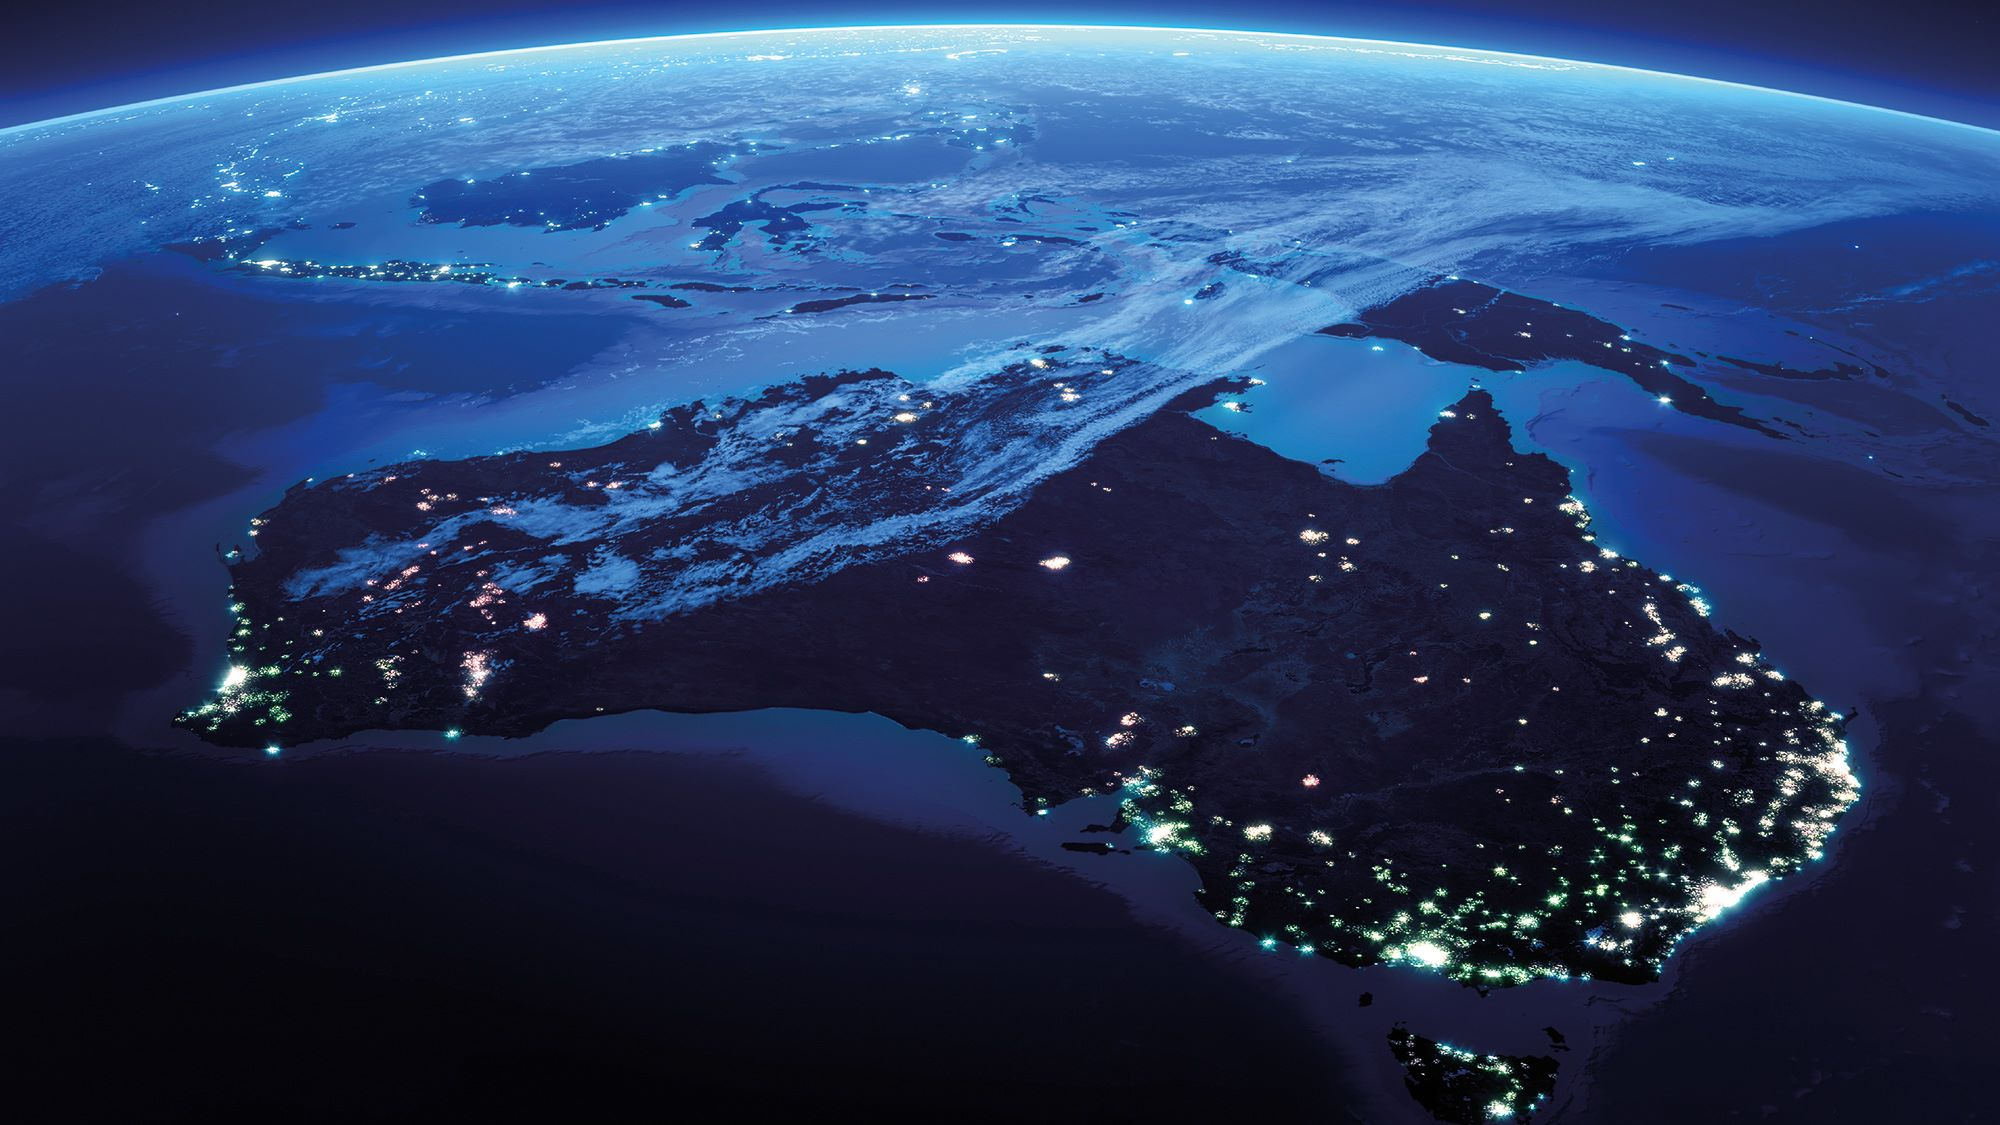 australia view from space at night